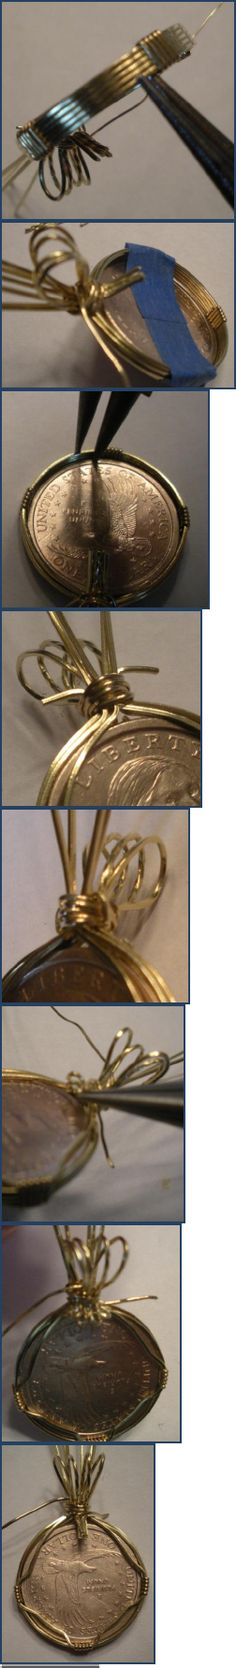 How to Wire Wrap a Coin Pendant Tutorial | Scribd